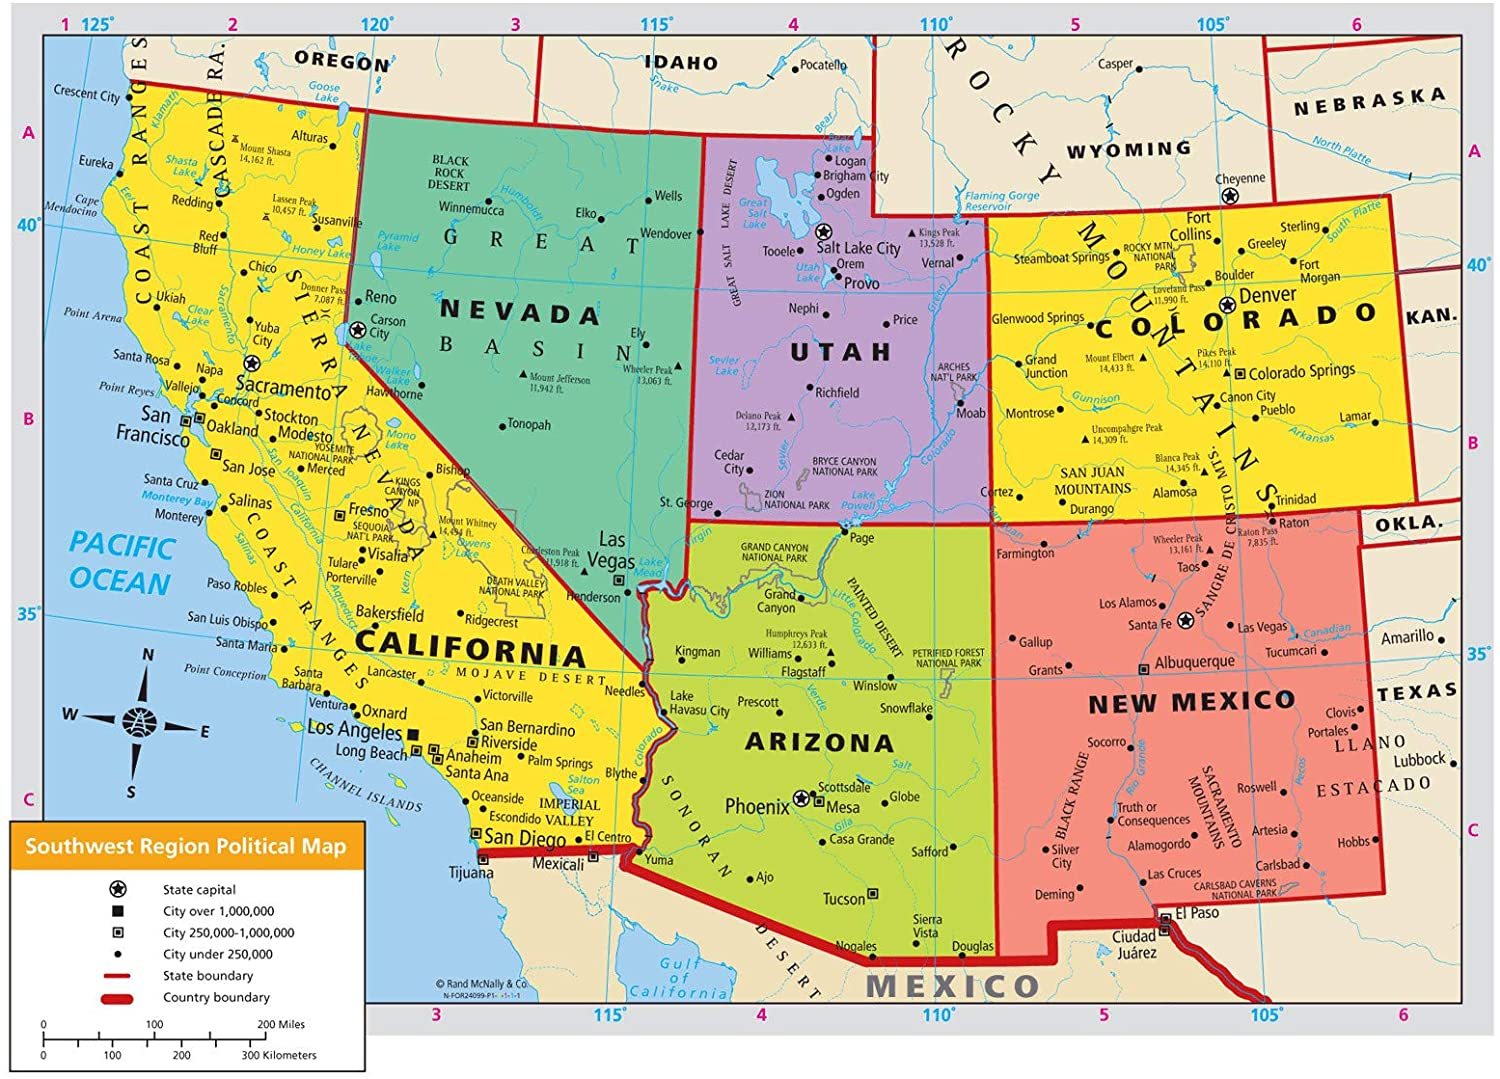 Map Of Southwestern Us Amazon.com: Map   Us Western Region Road Map The Southwest General